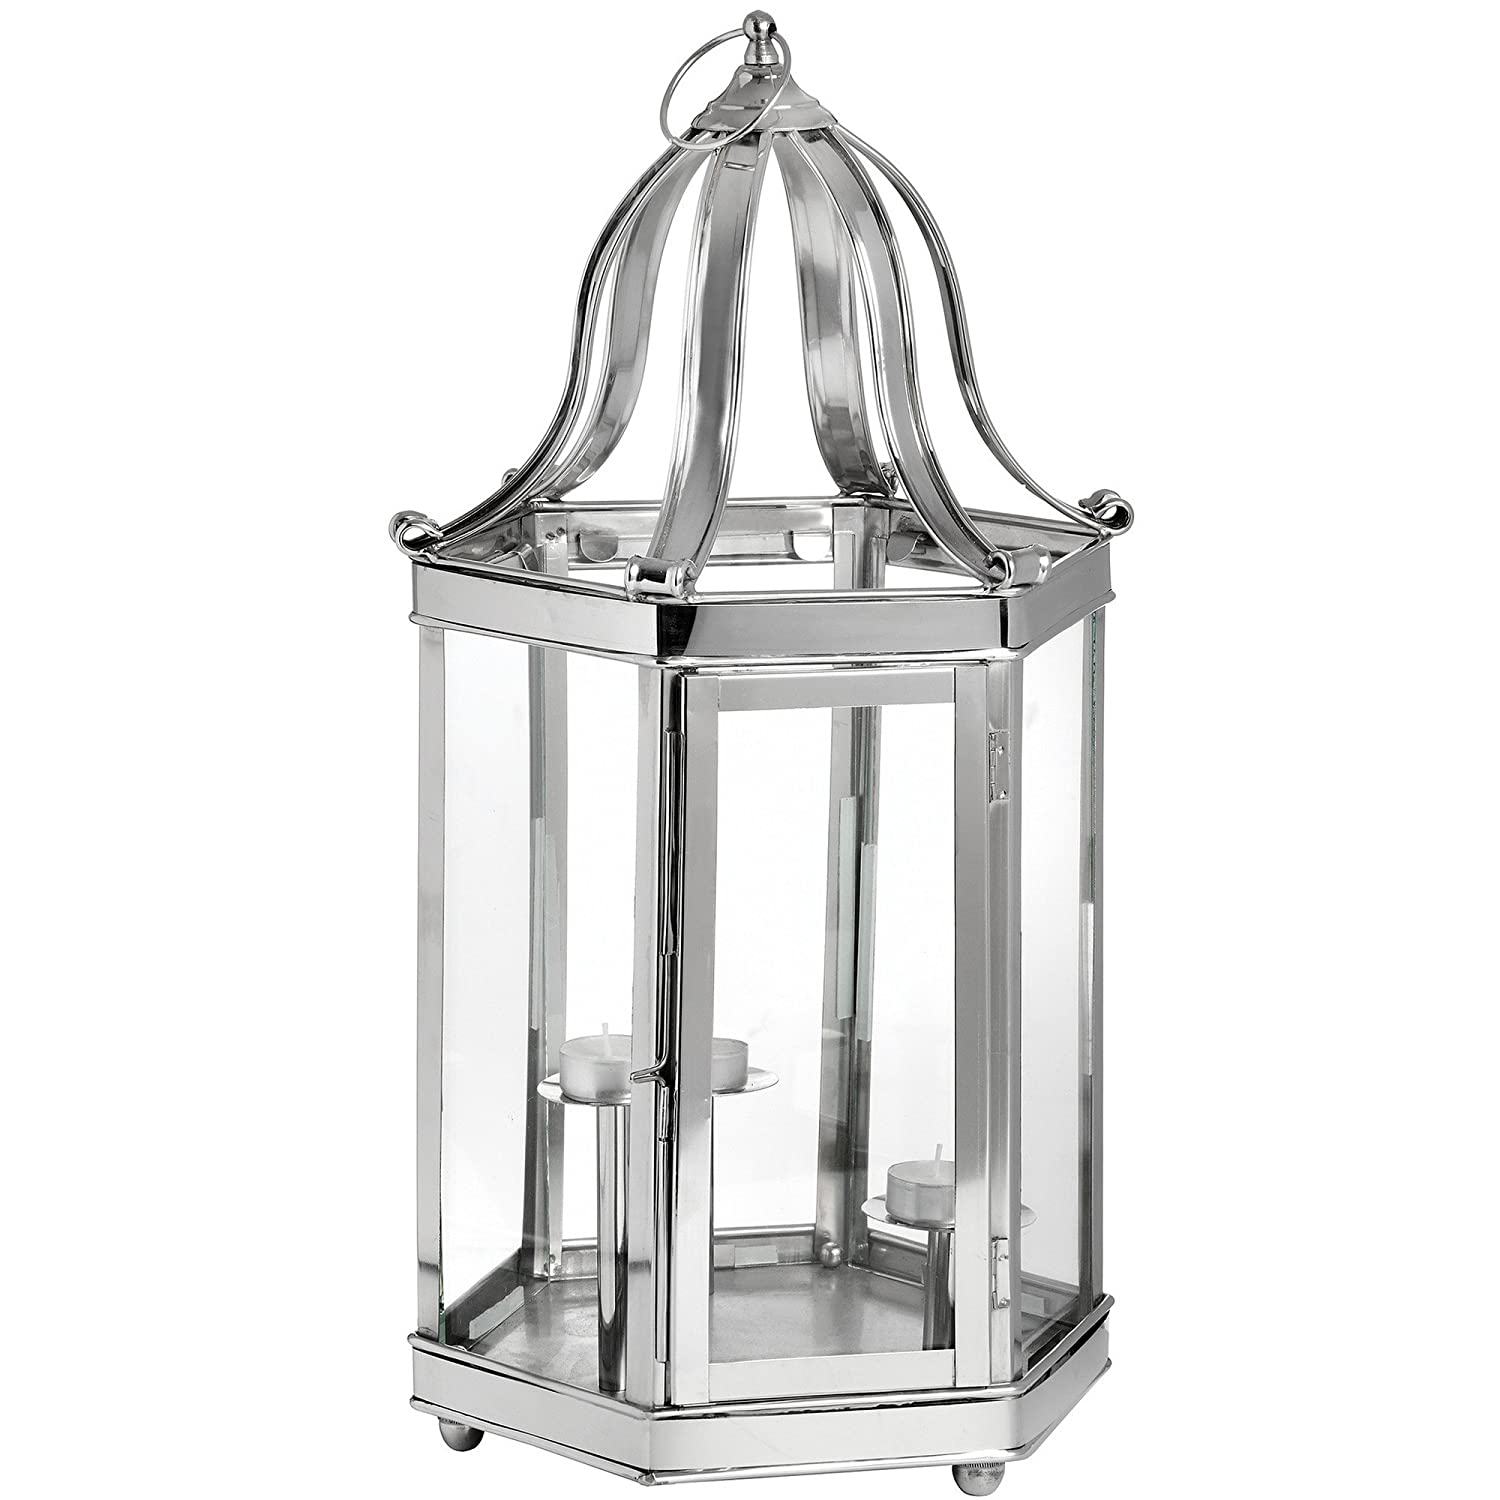 Hill Interiors Decorative Lantern With 3 Candle Stands (H53 x W26 x D26cm) (Silver) UTHI2704_1